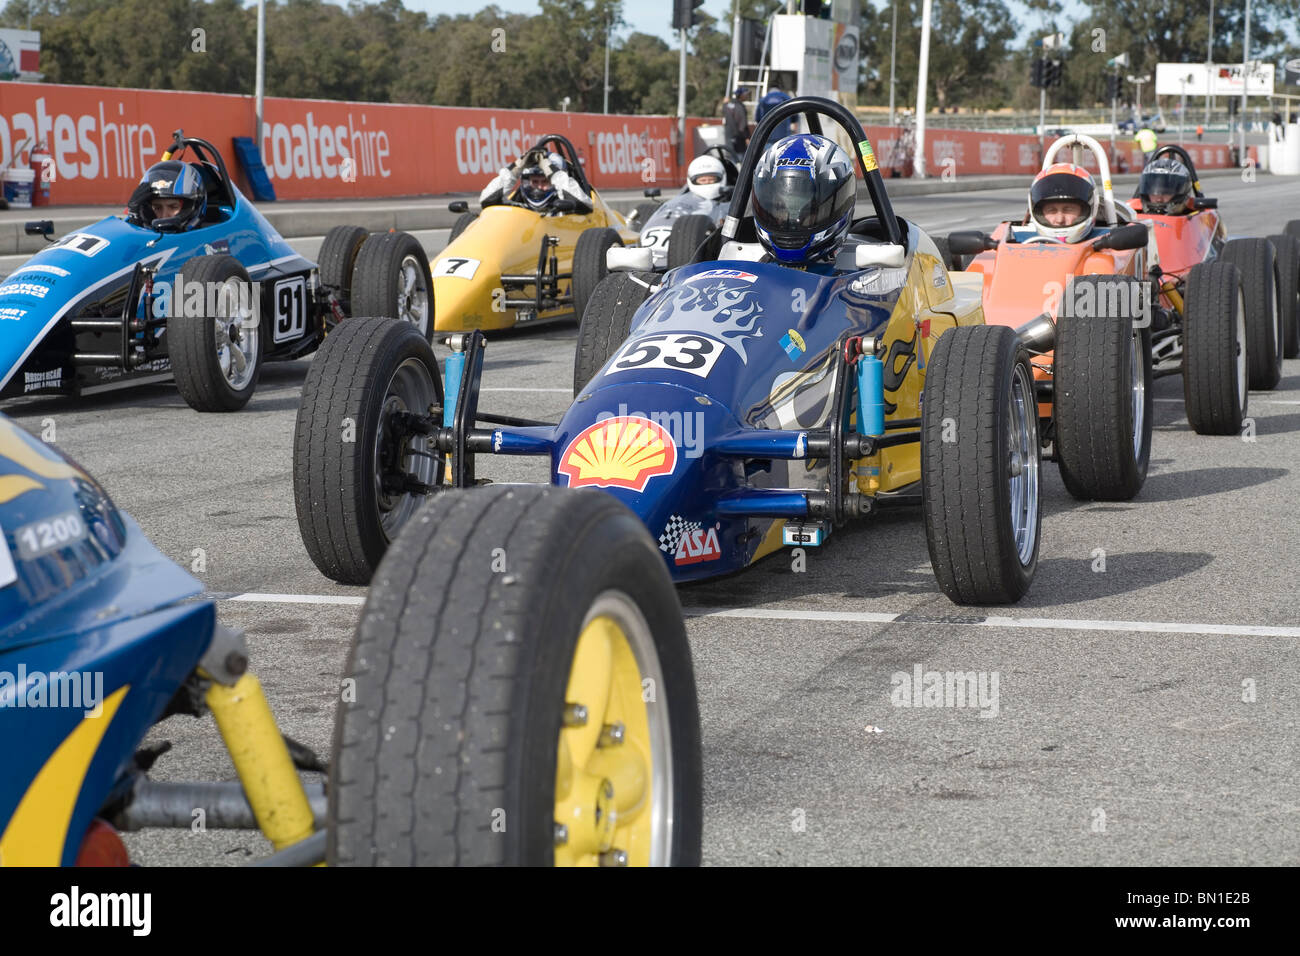 Race Cars Lined Up Stock Photos Race Cars Lined Up Stock Images